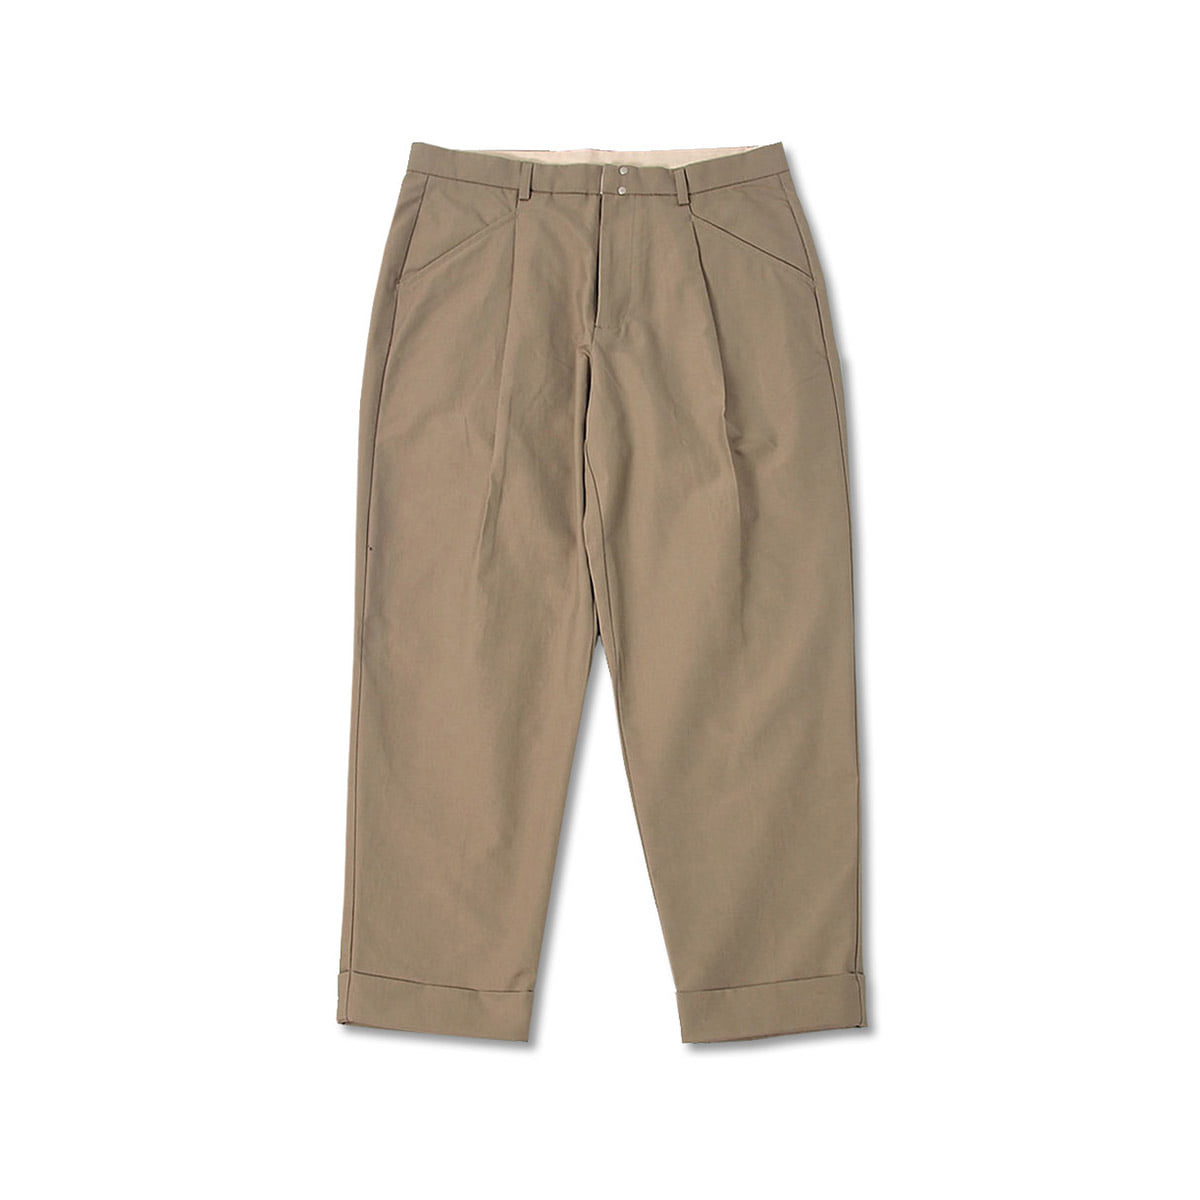 [BEHEAVYER] STANDARD TUCK PANTS 'GREY BEIGE'